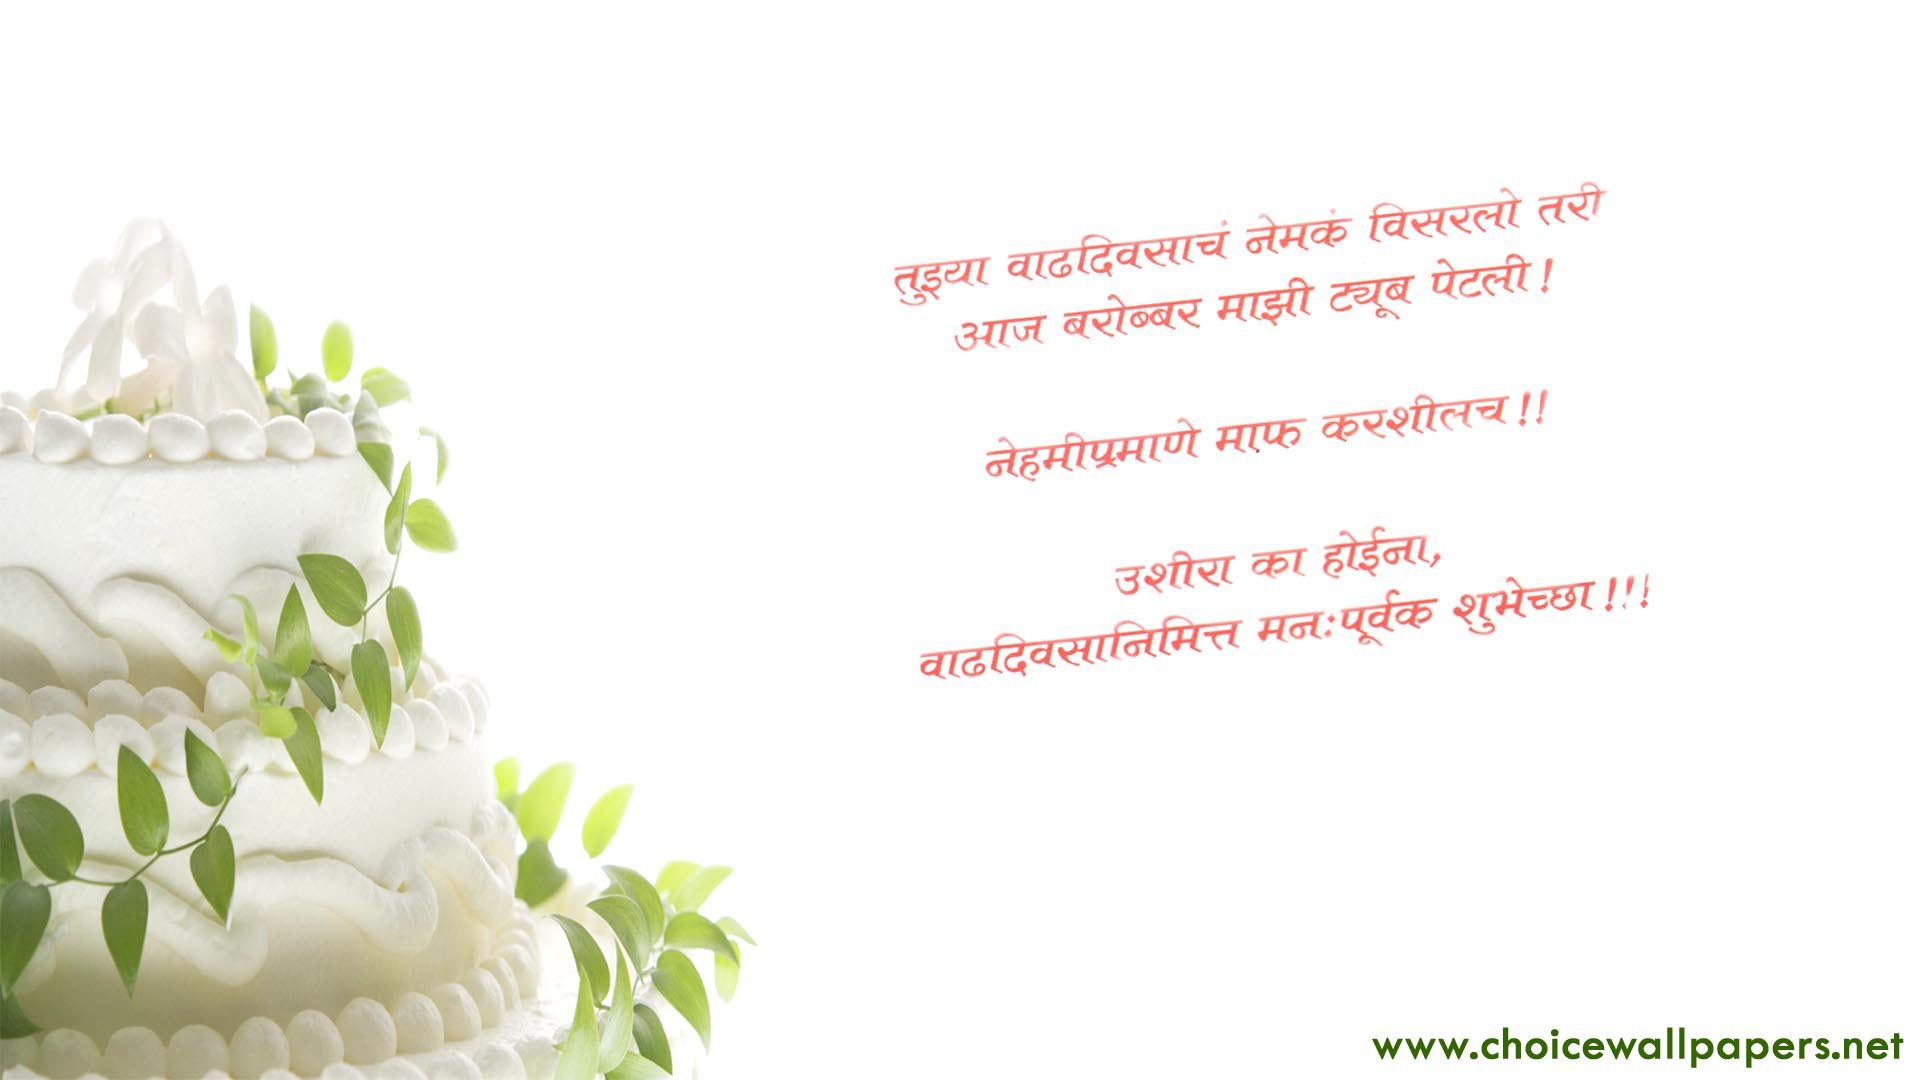 marathi birthday wishes on hd wallpaper   Choice Wallpaper 1920x1080